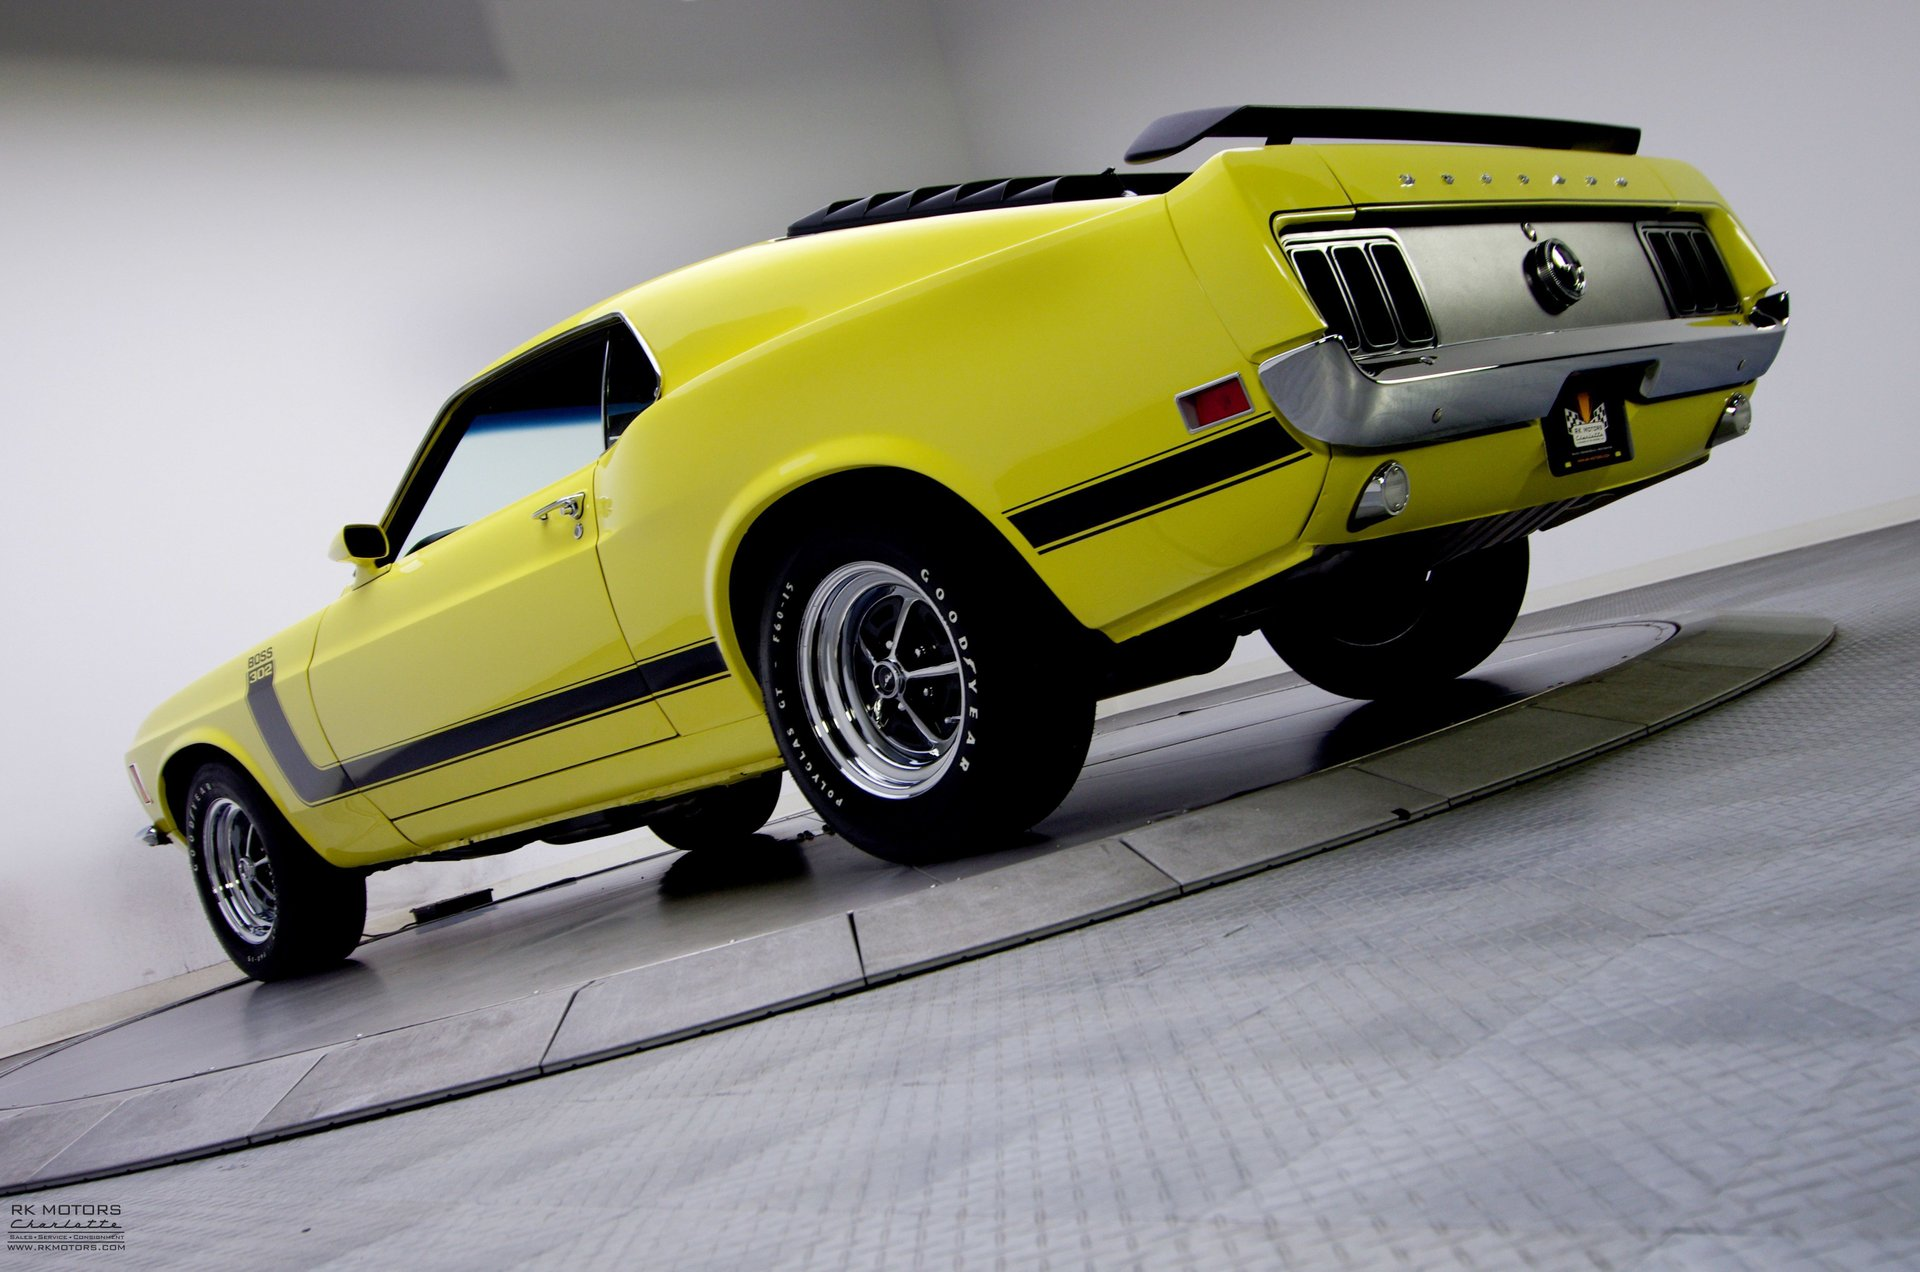 132612 1970 Ford Mustang Rk Motors Classic Cars For Sale Gt